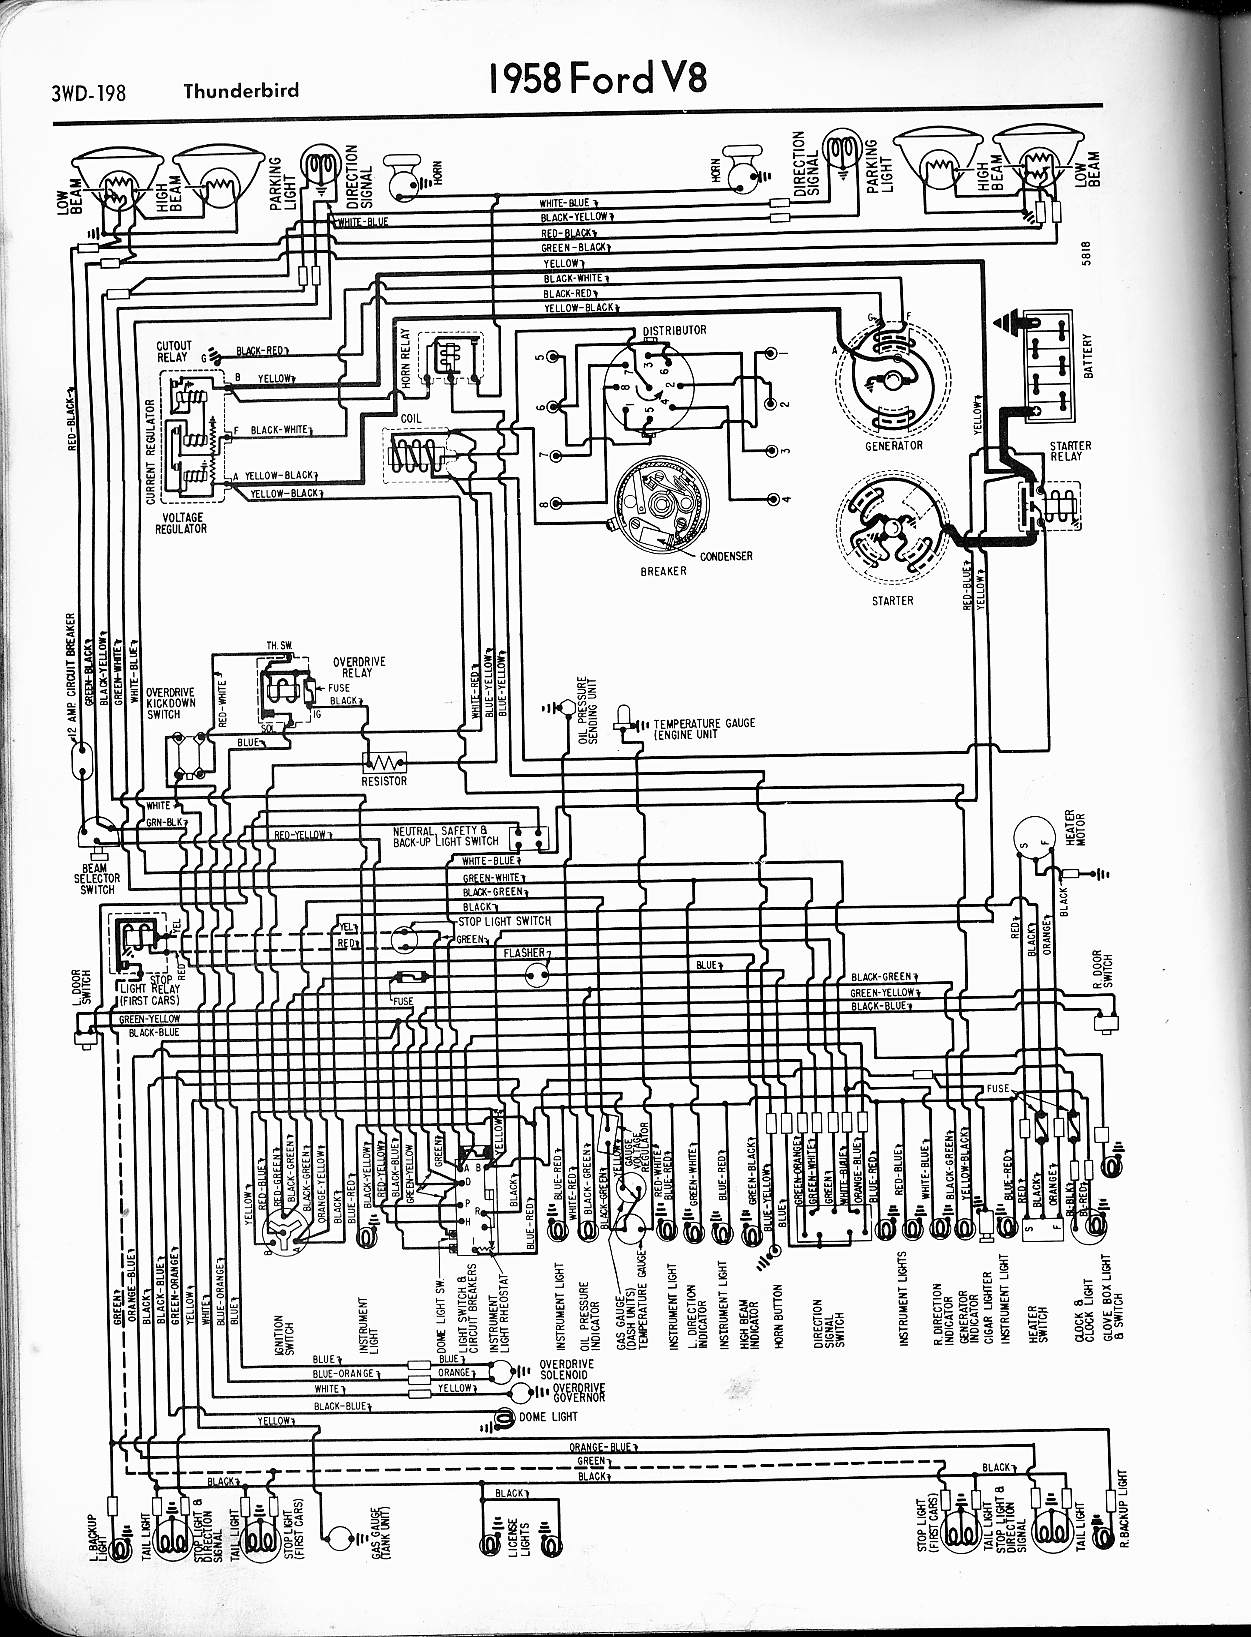 1958 thunderbird  57-65 ford wiring diagrams 1958 thunderbird  1970 ford f  350